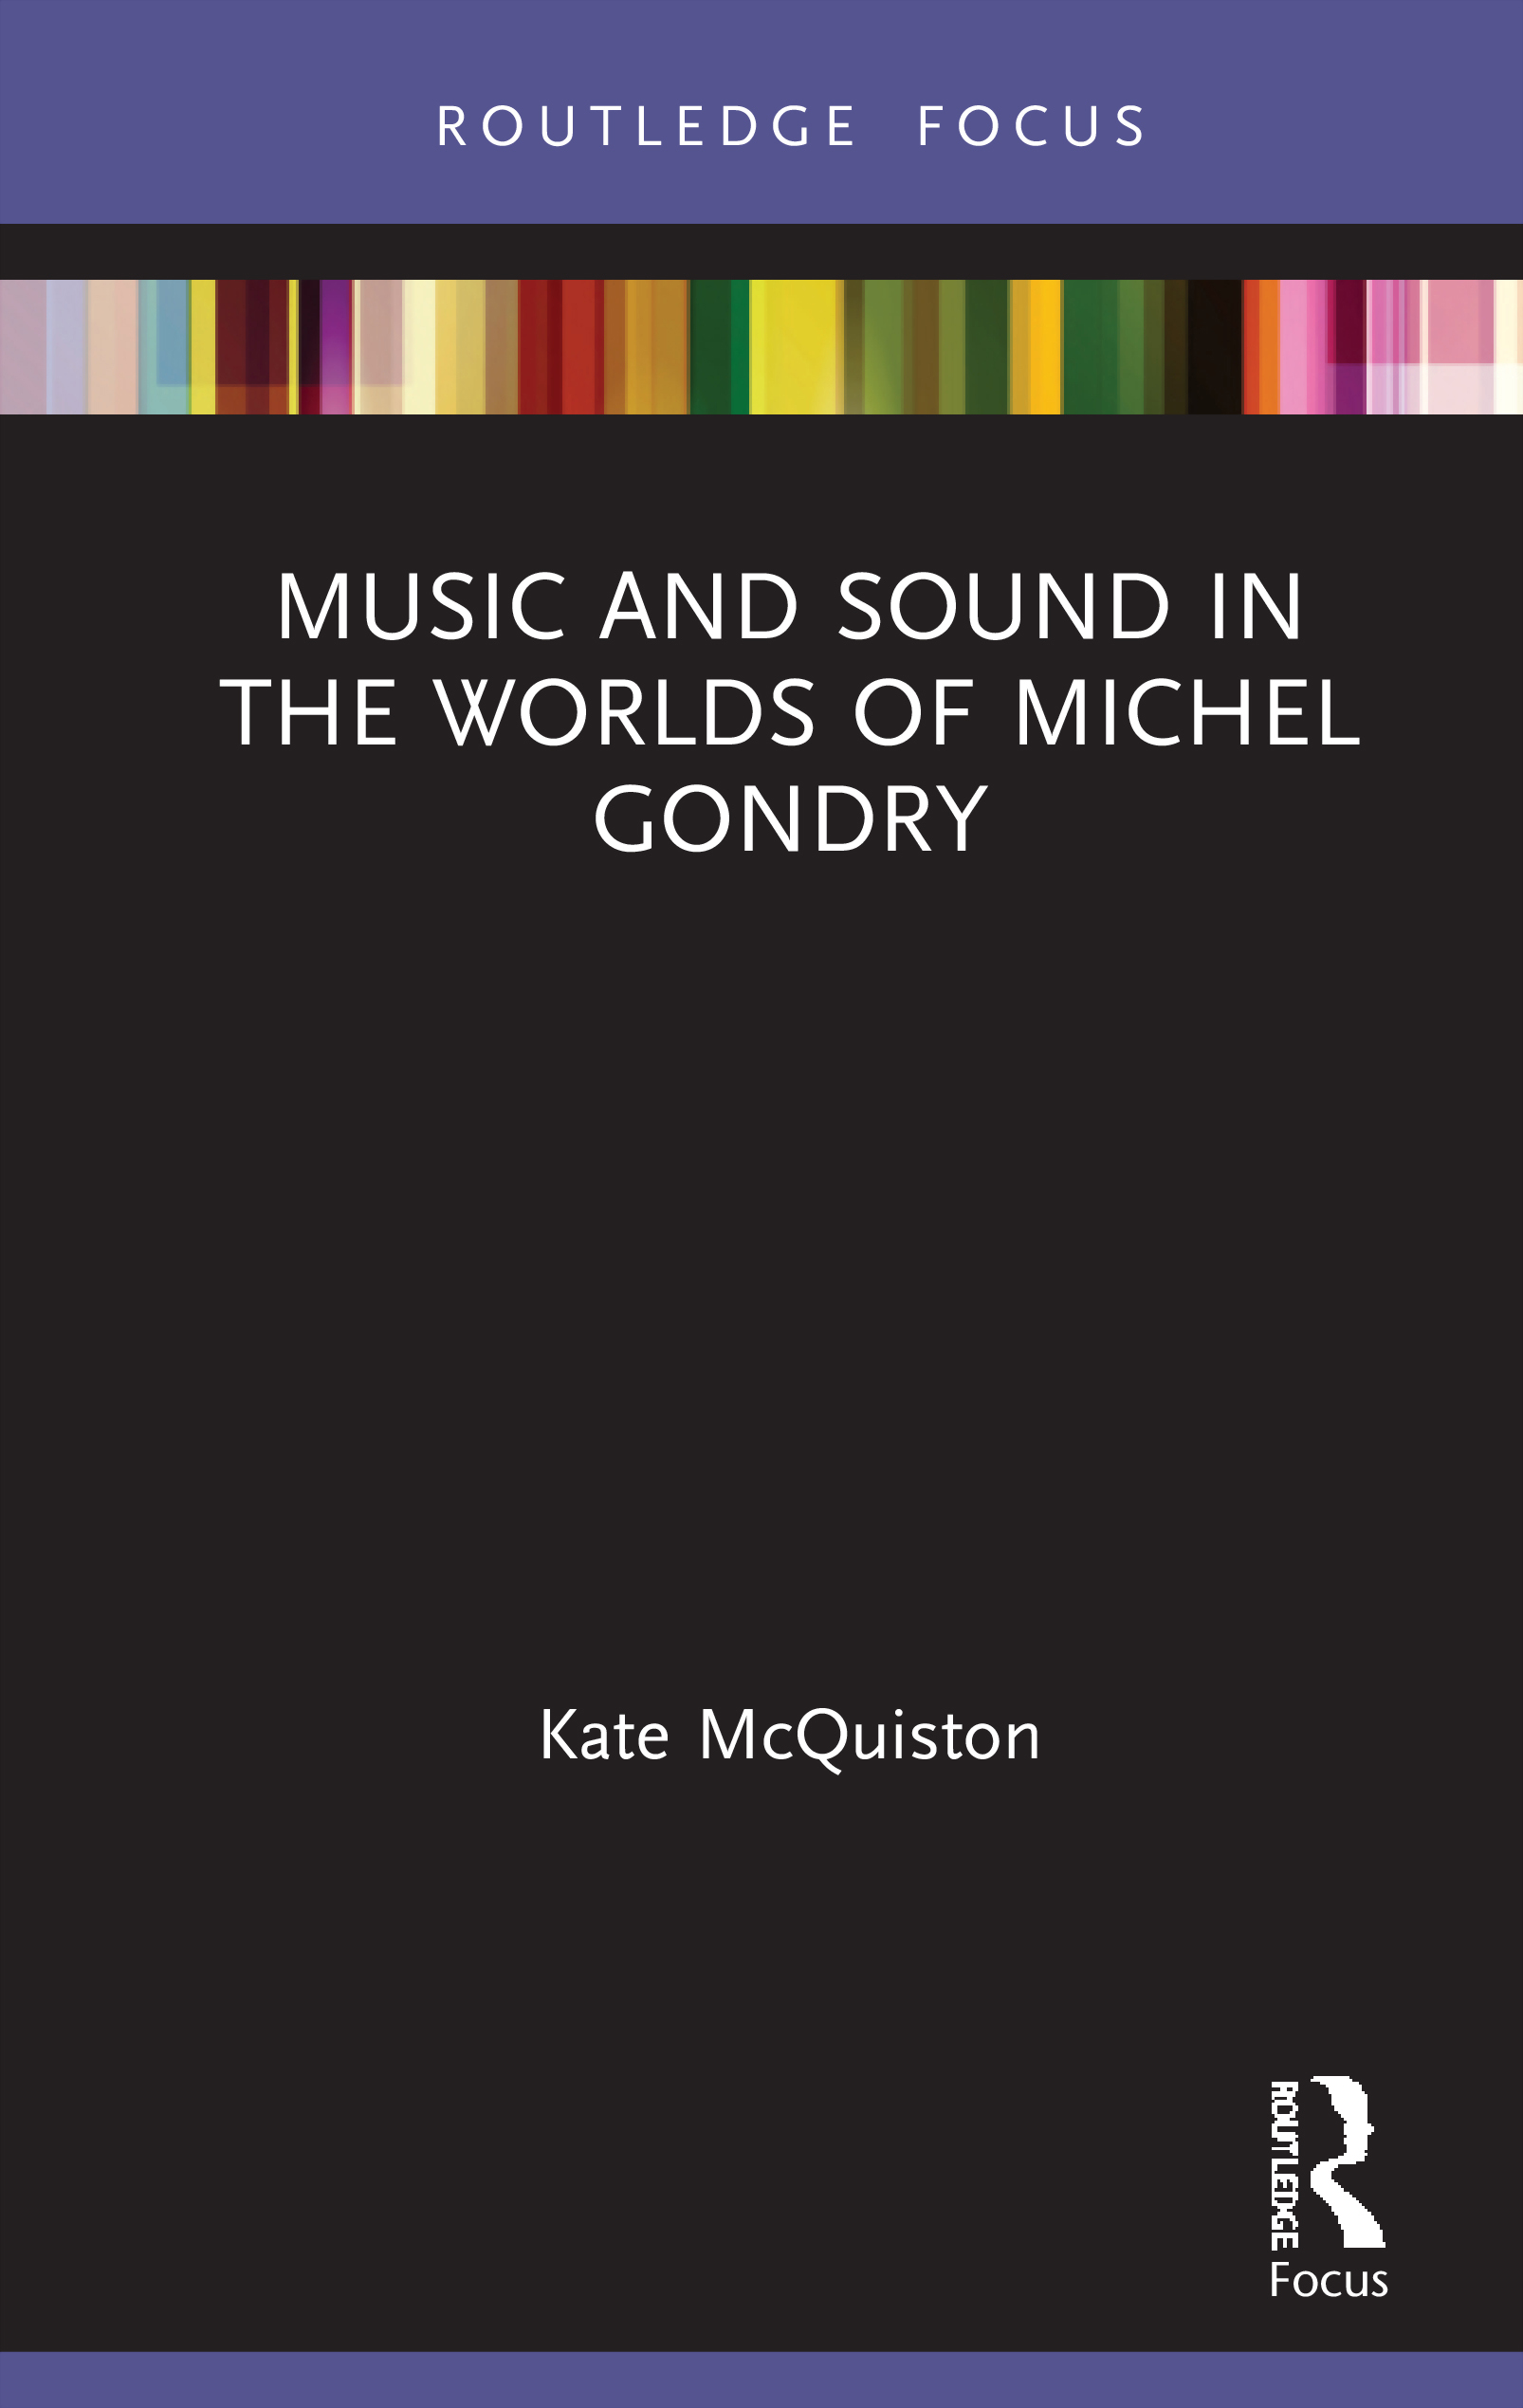 Music and Sound in the Worlds of Michel Gondry